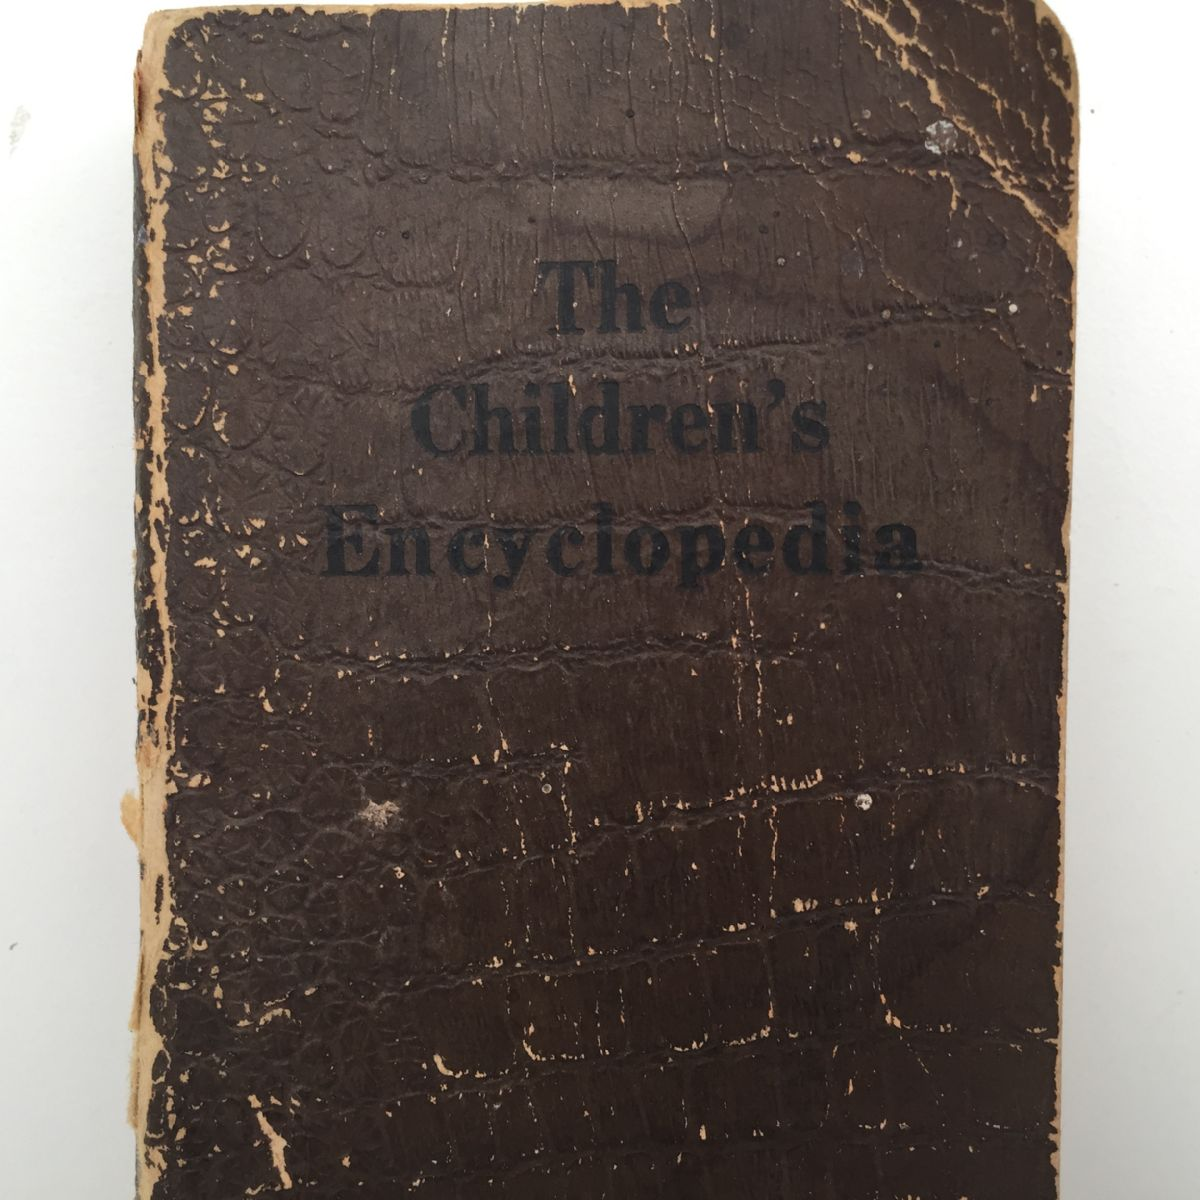 The Children's Encyclopedia or the Reason Why